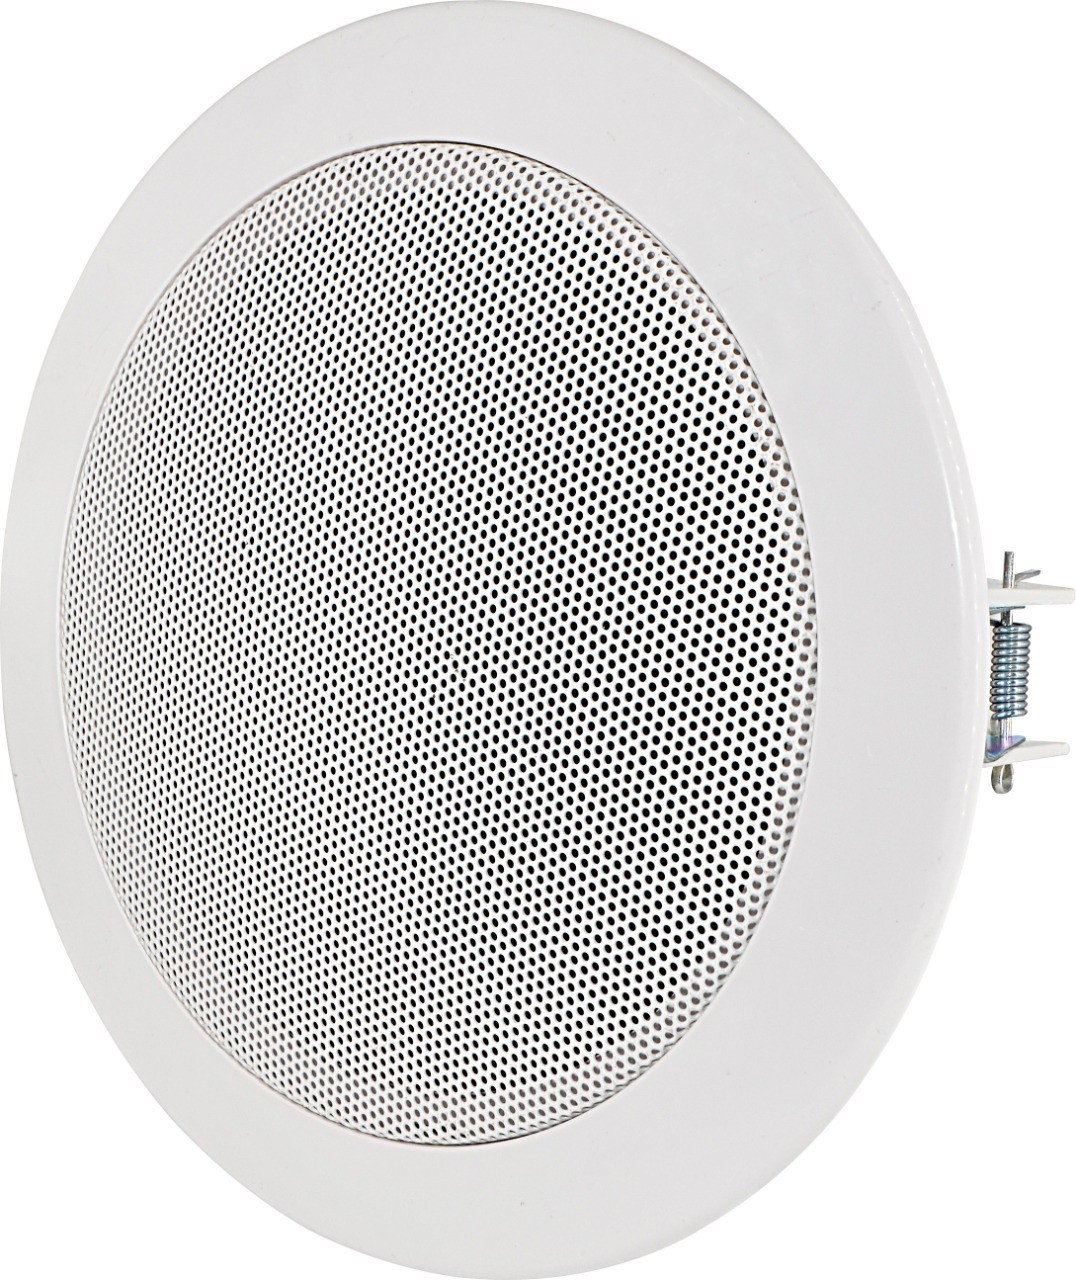 Best Quality Ceiling Speakers